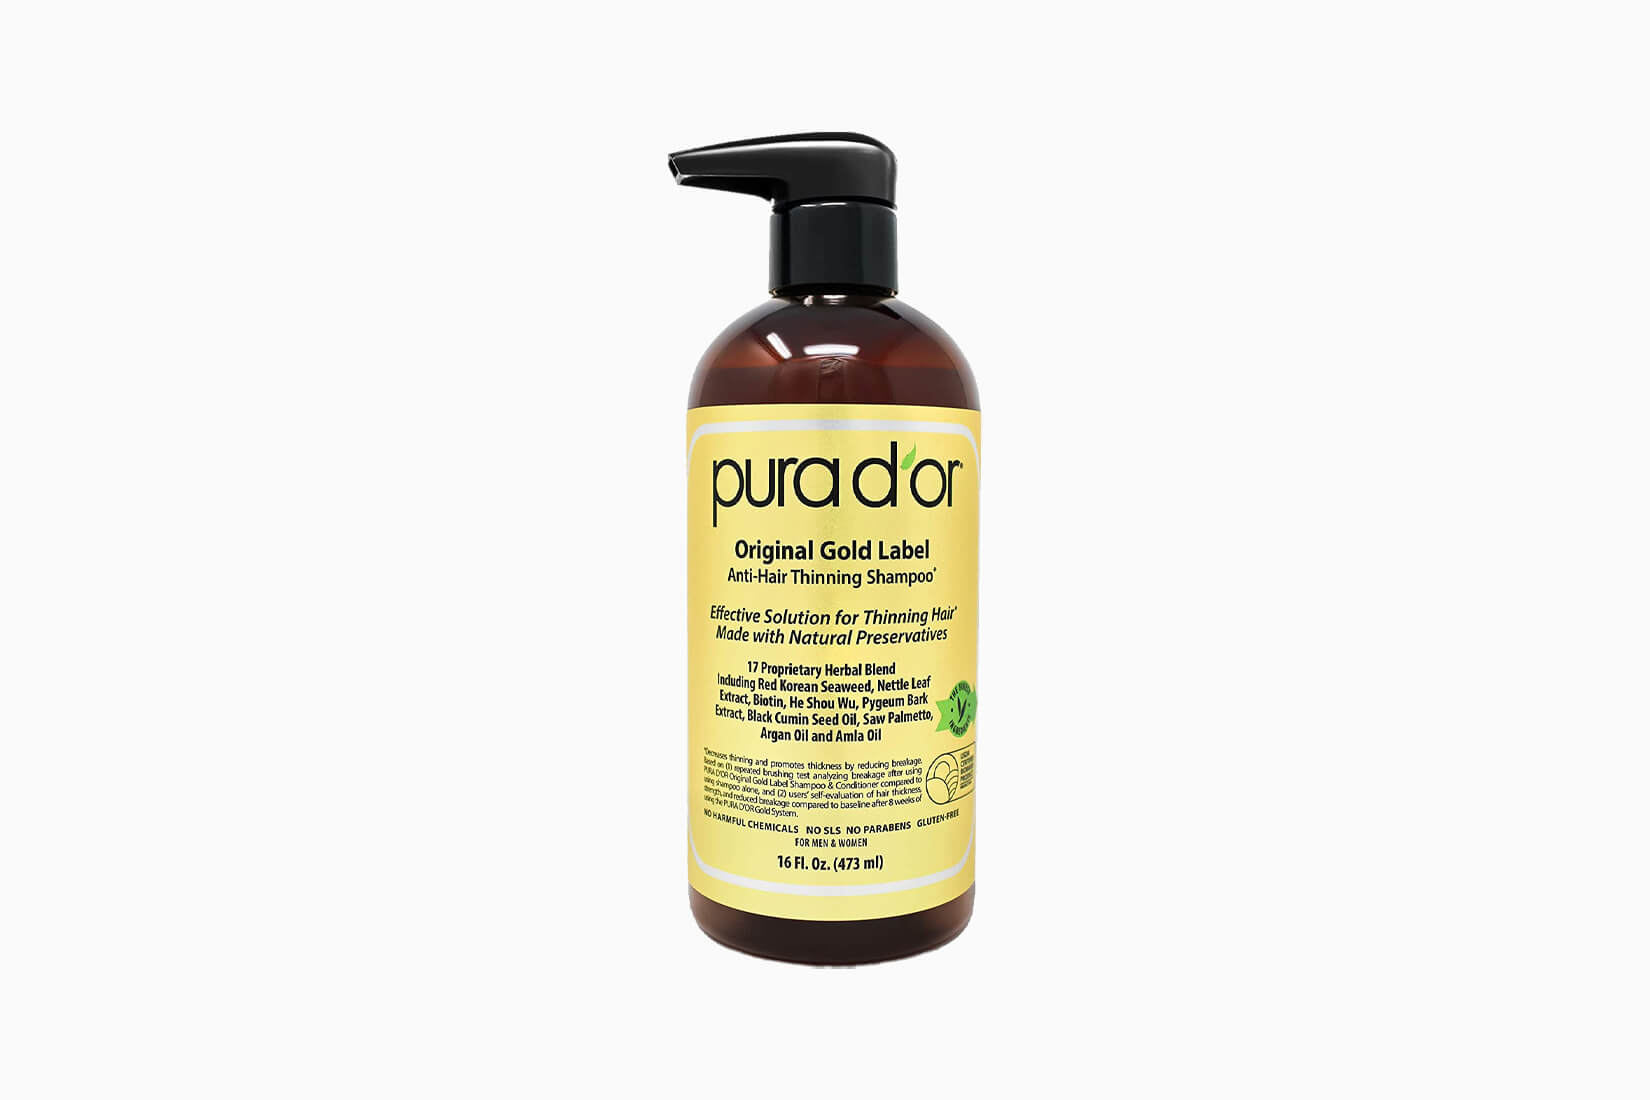 best hair growth shampoo women pura d'or review - Luxe Digital